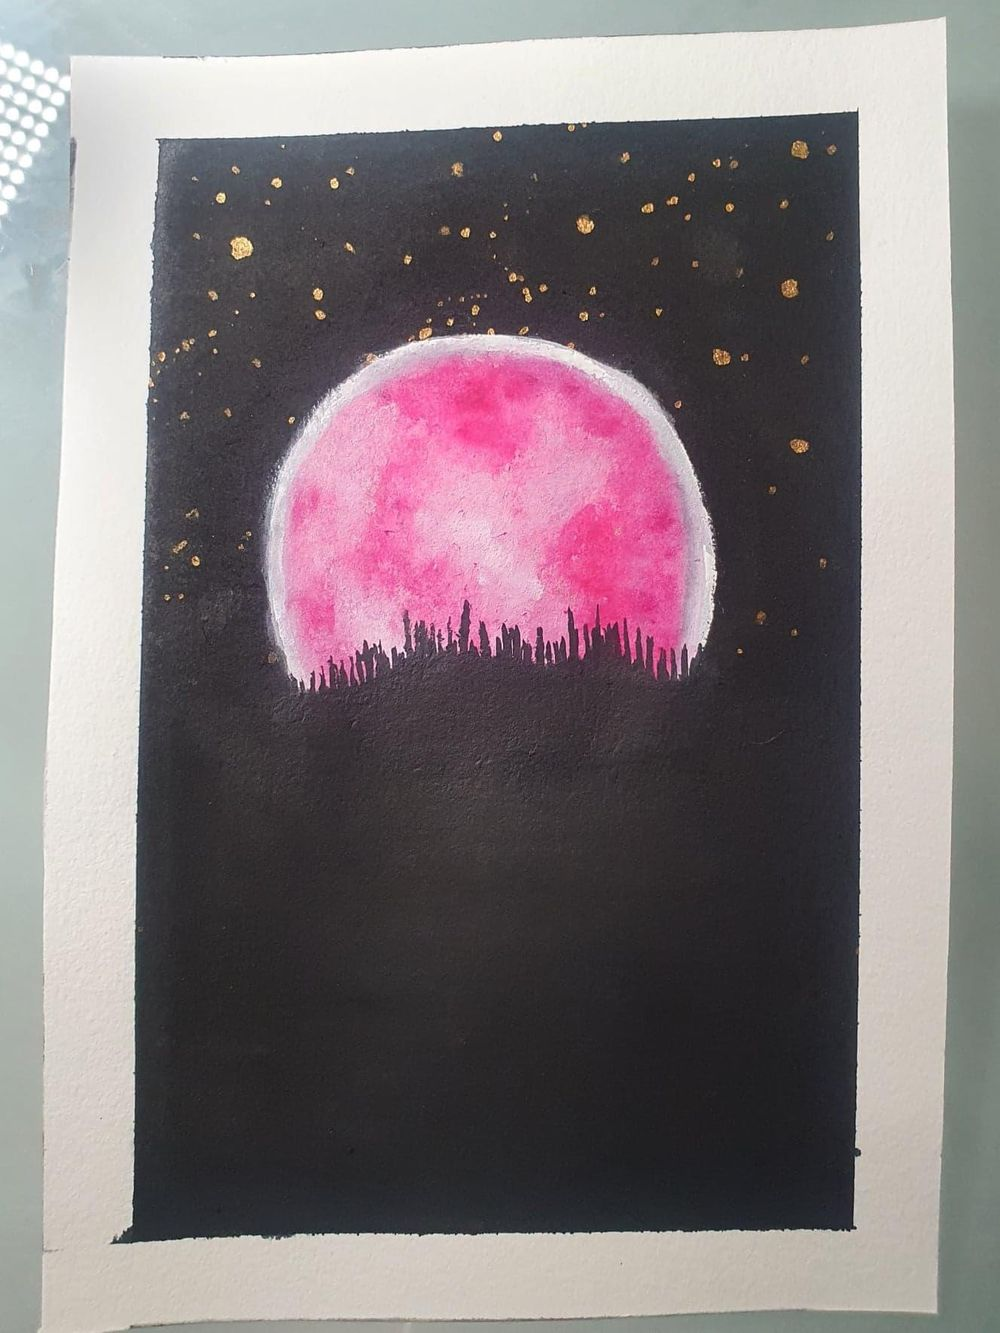 Glowing Moon - image 3 - student project